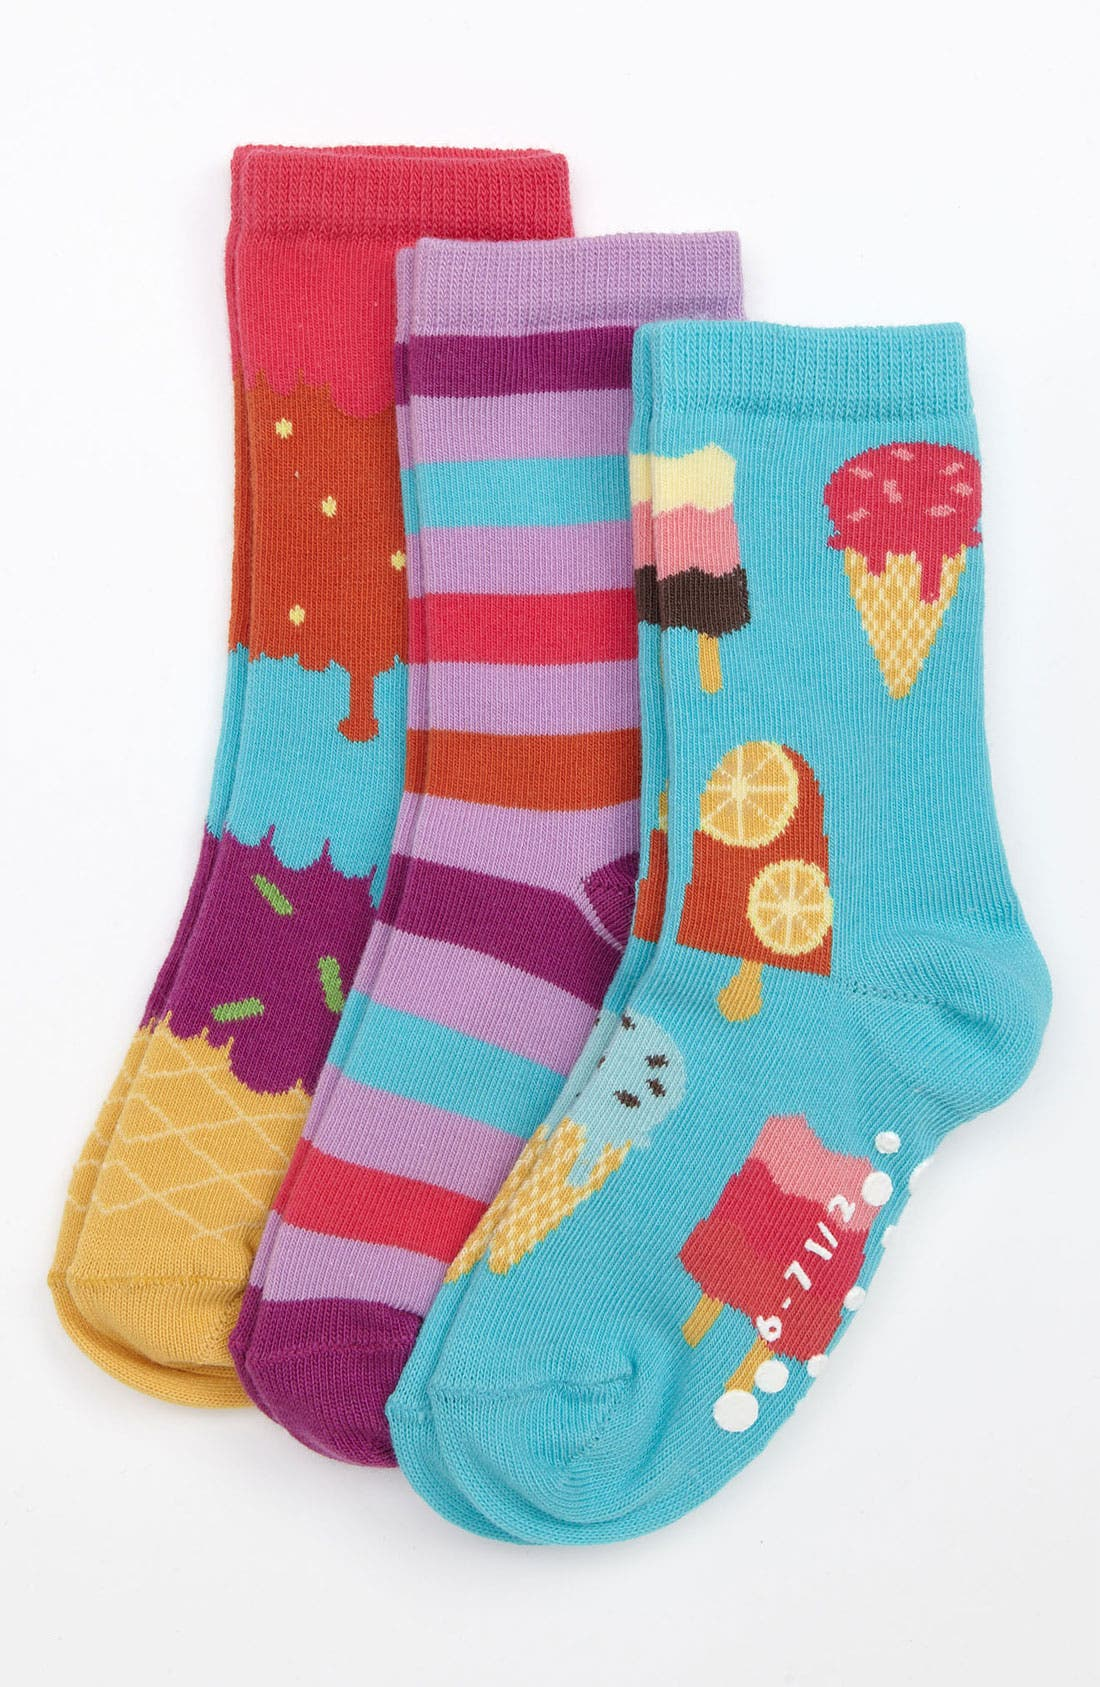 Main Image - Nordstrom 'Ice Cream Social' Socks (3-Pack) (Toddler & Little Girls)